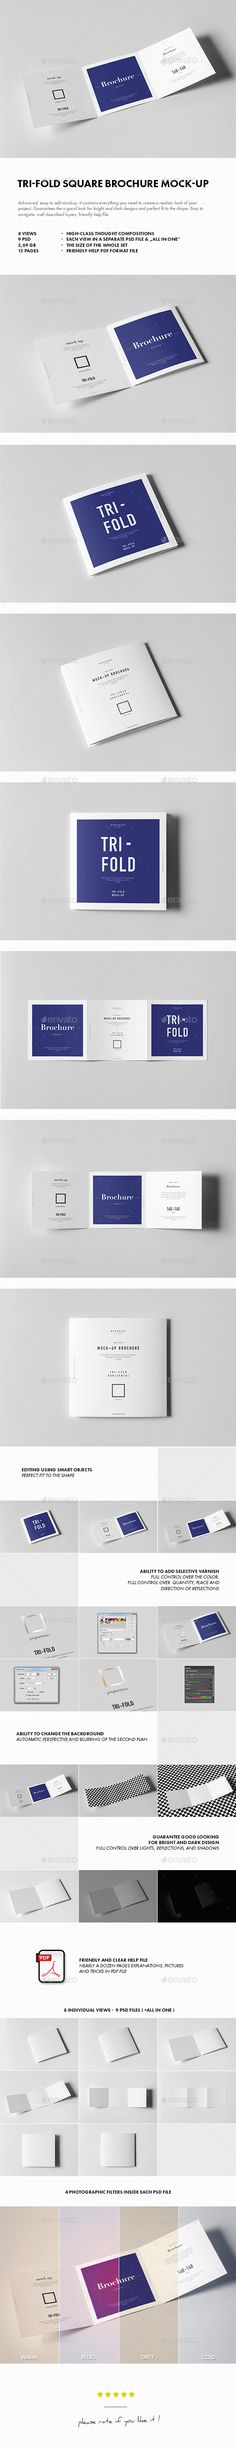 TriFold Square Brochure Mockup — Photoshop PSD #flyer #advertising folder • Available here → https://graphicriver.net/item/trifold-square-brochure-mockup/18126309?ref=pxcr